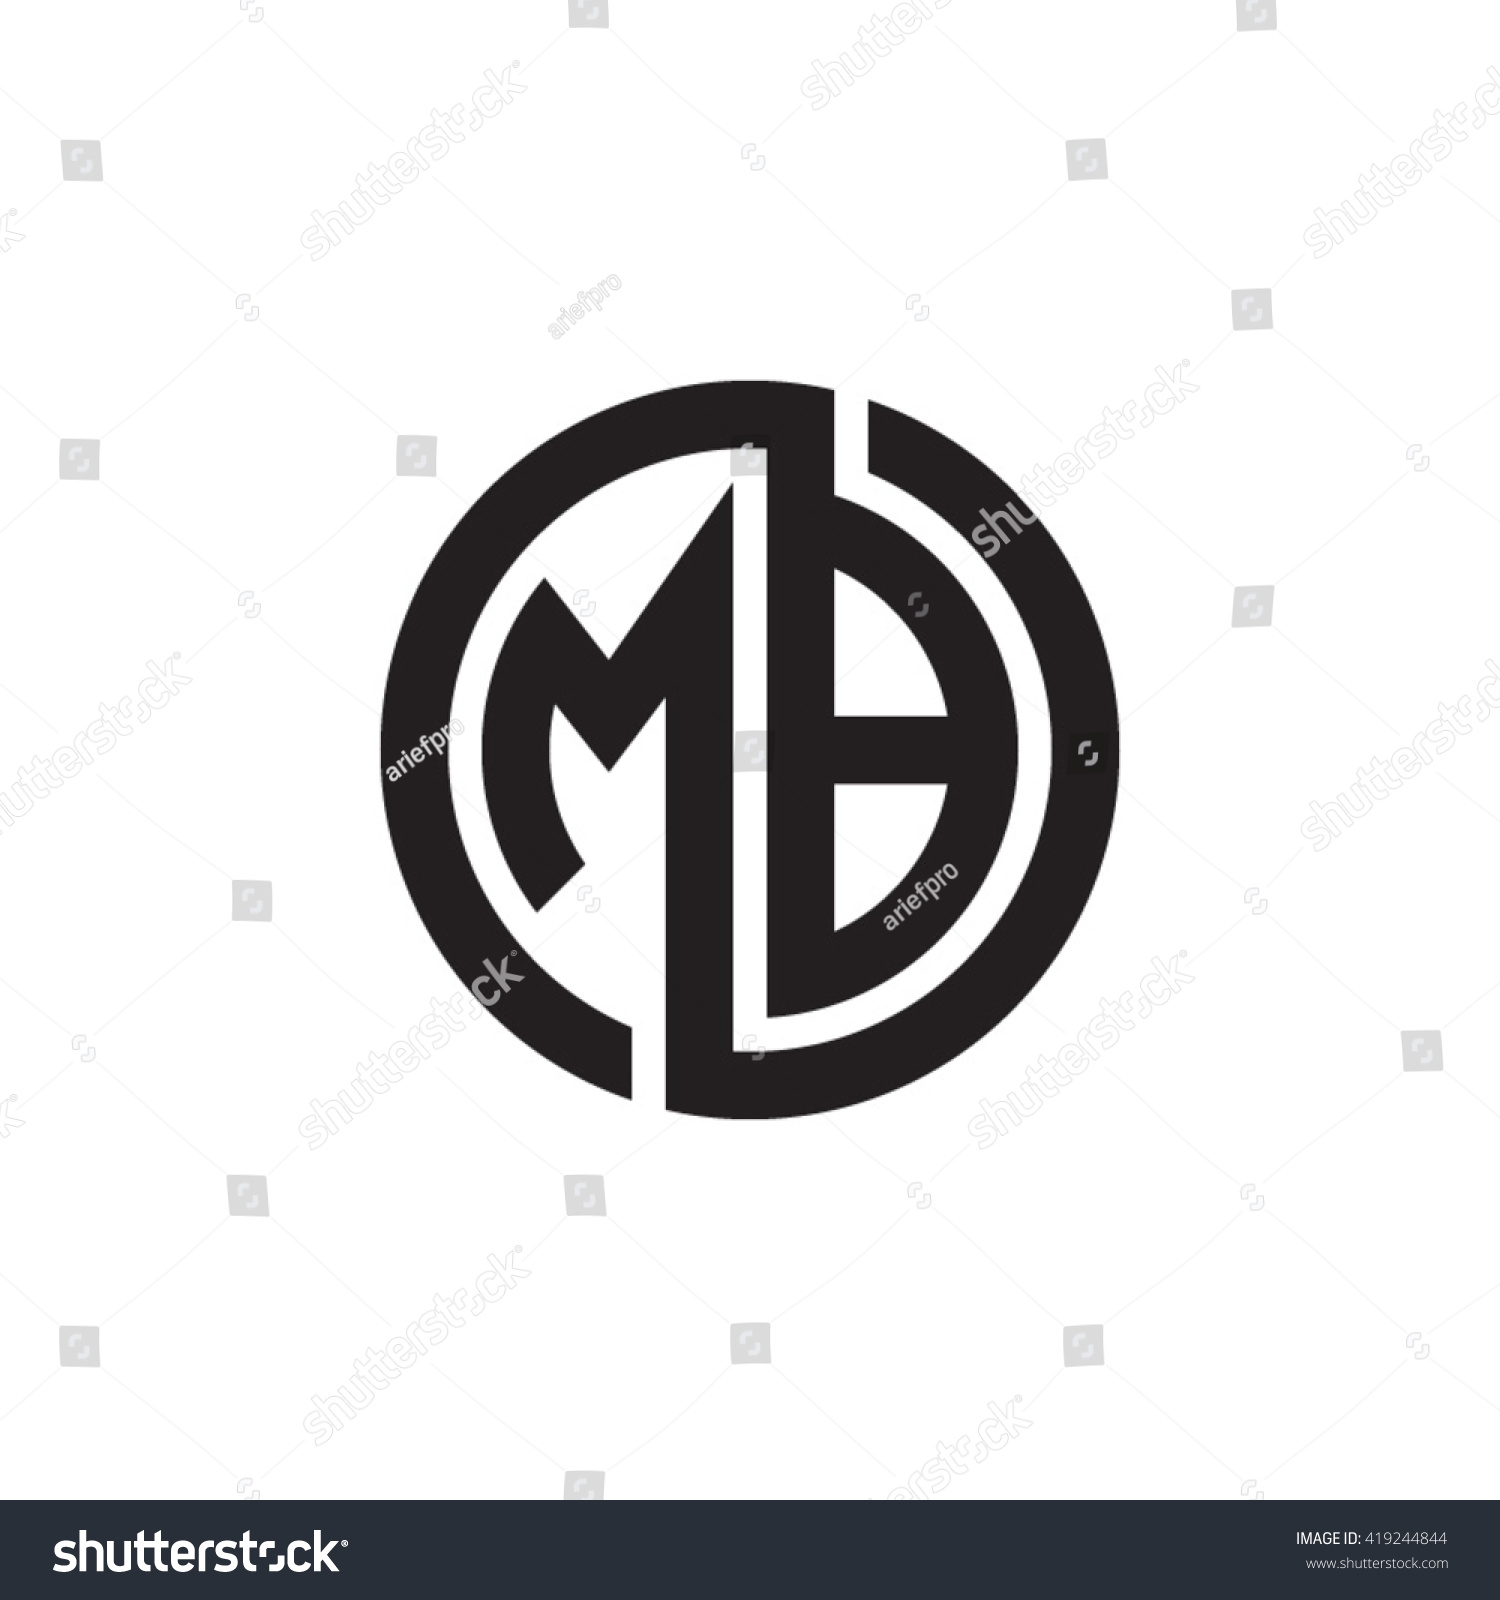 Mb Letters Red Abstract Black Background Stock Vector 411212668 ...